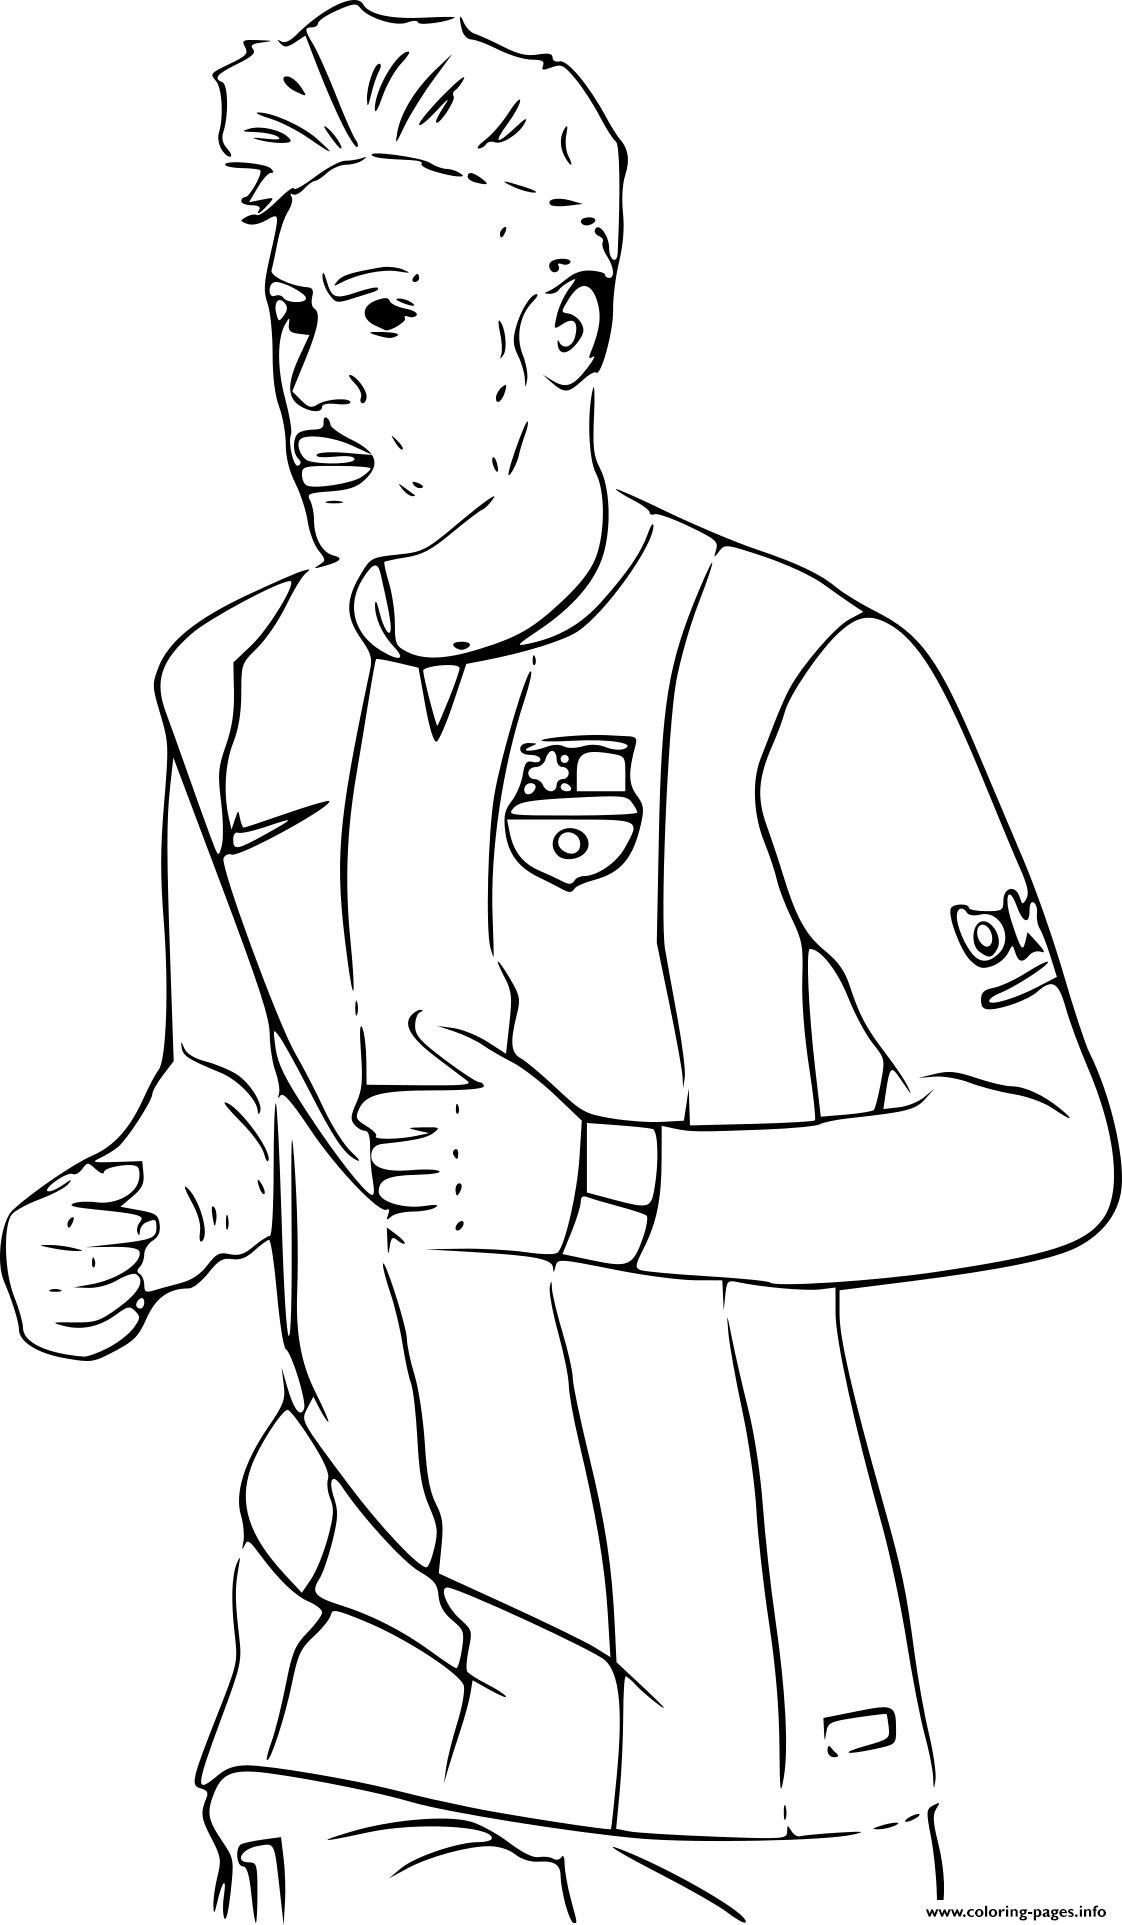 the best free messi coloring page images from